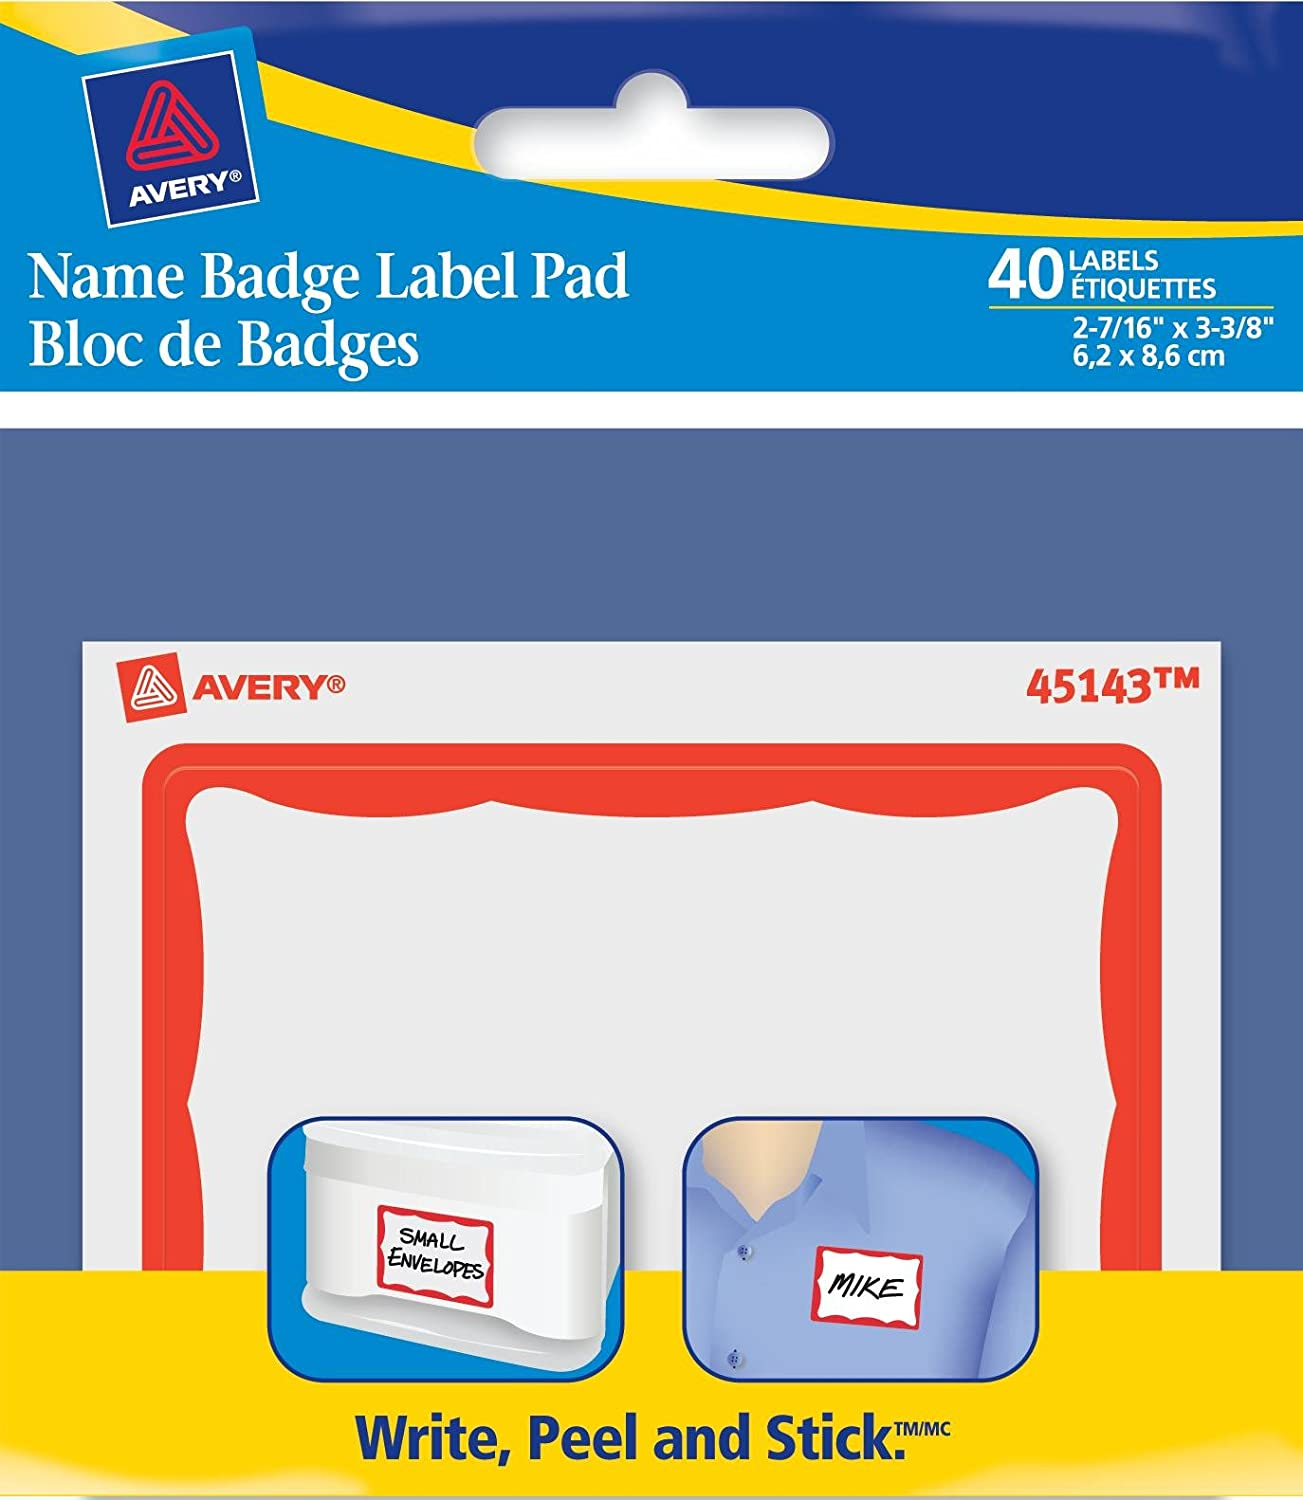 Avery Name Badge Label Pad, 2-7/16 x 3-3/8, Red Border, Rectangle, 40 Labels, Removable (45143) 2-7/16 x 3-3/8 Avery Dennison CA